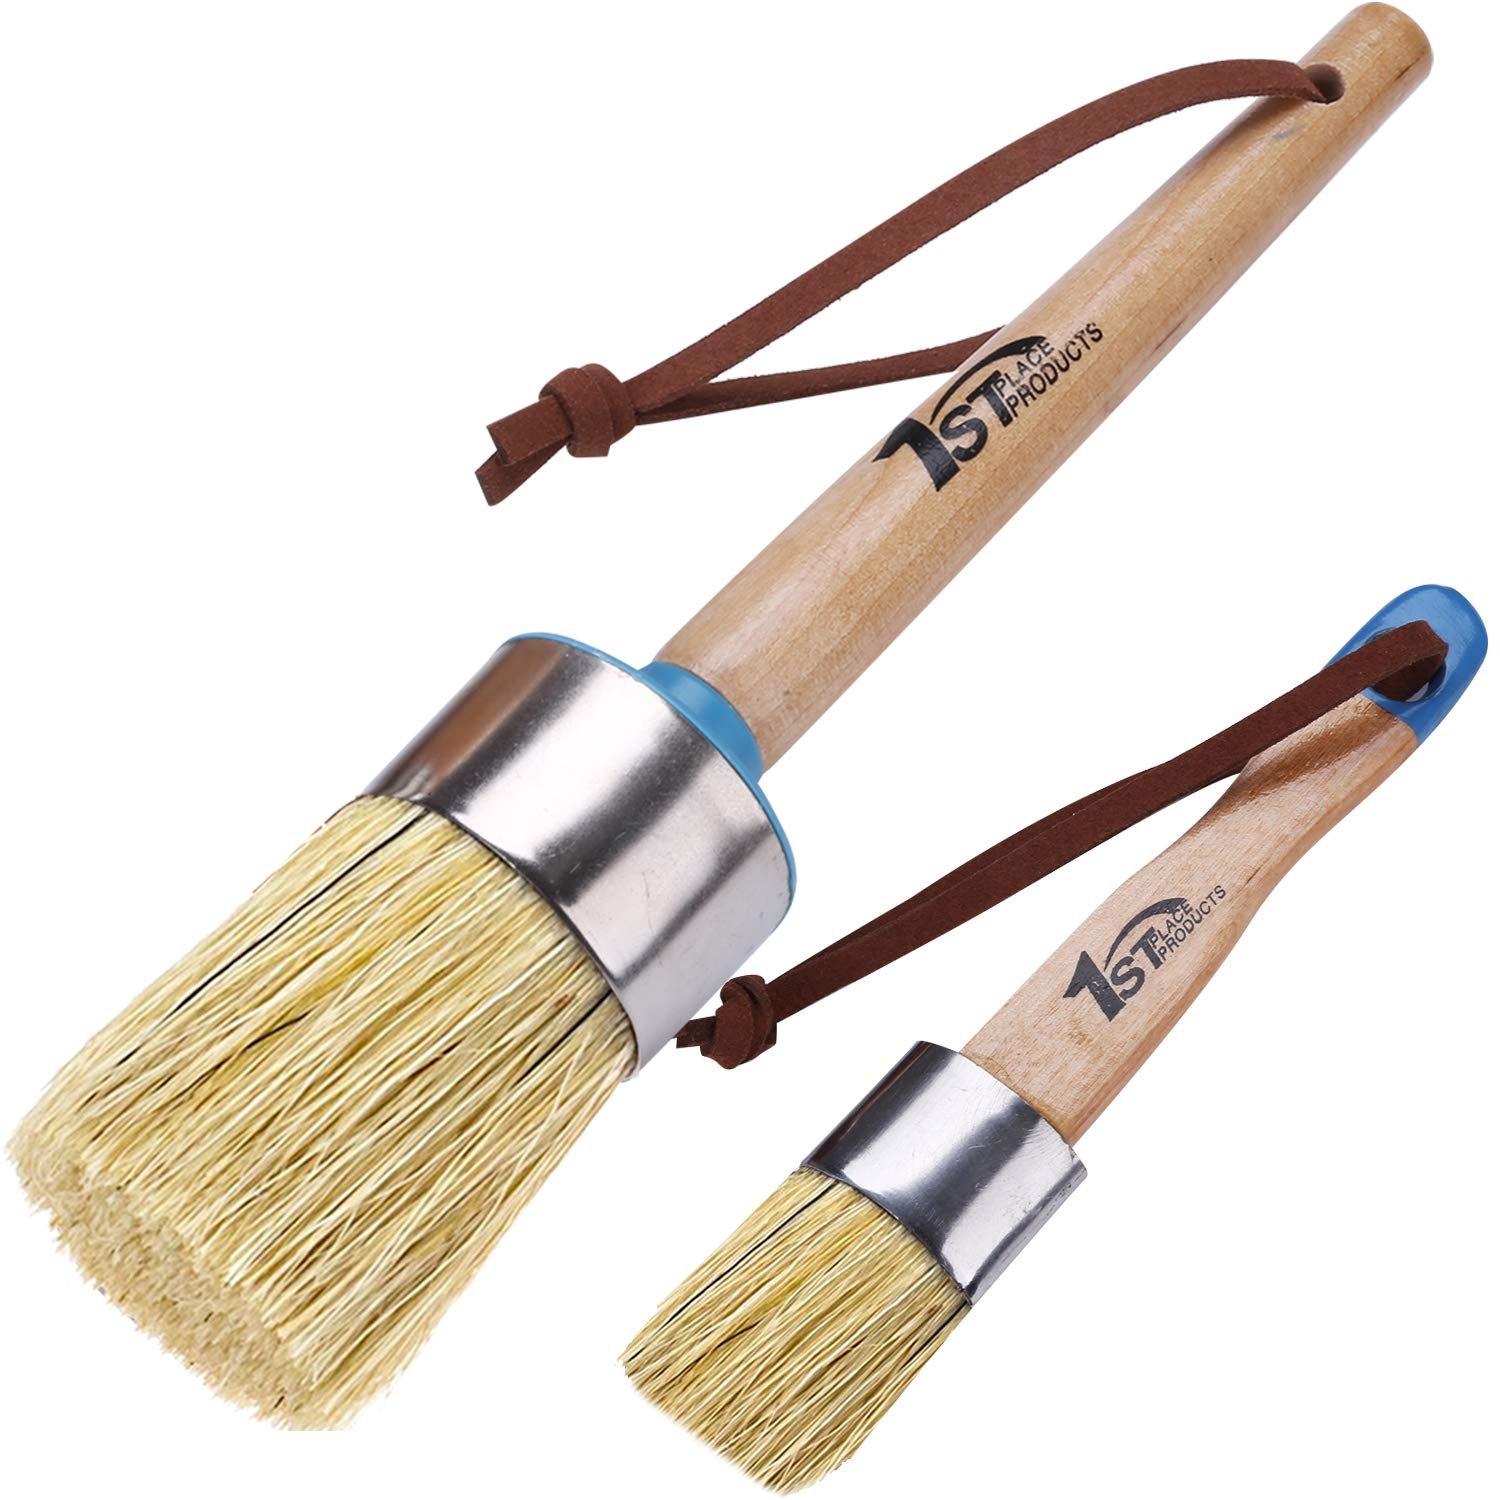 1st Place Products Large Round & Flat Brush Set - Excellent for Chalked Finish Paint & Waxes - Pure White Boar Hair Bristles by 1st Place Products